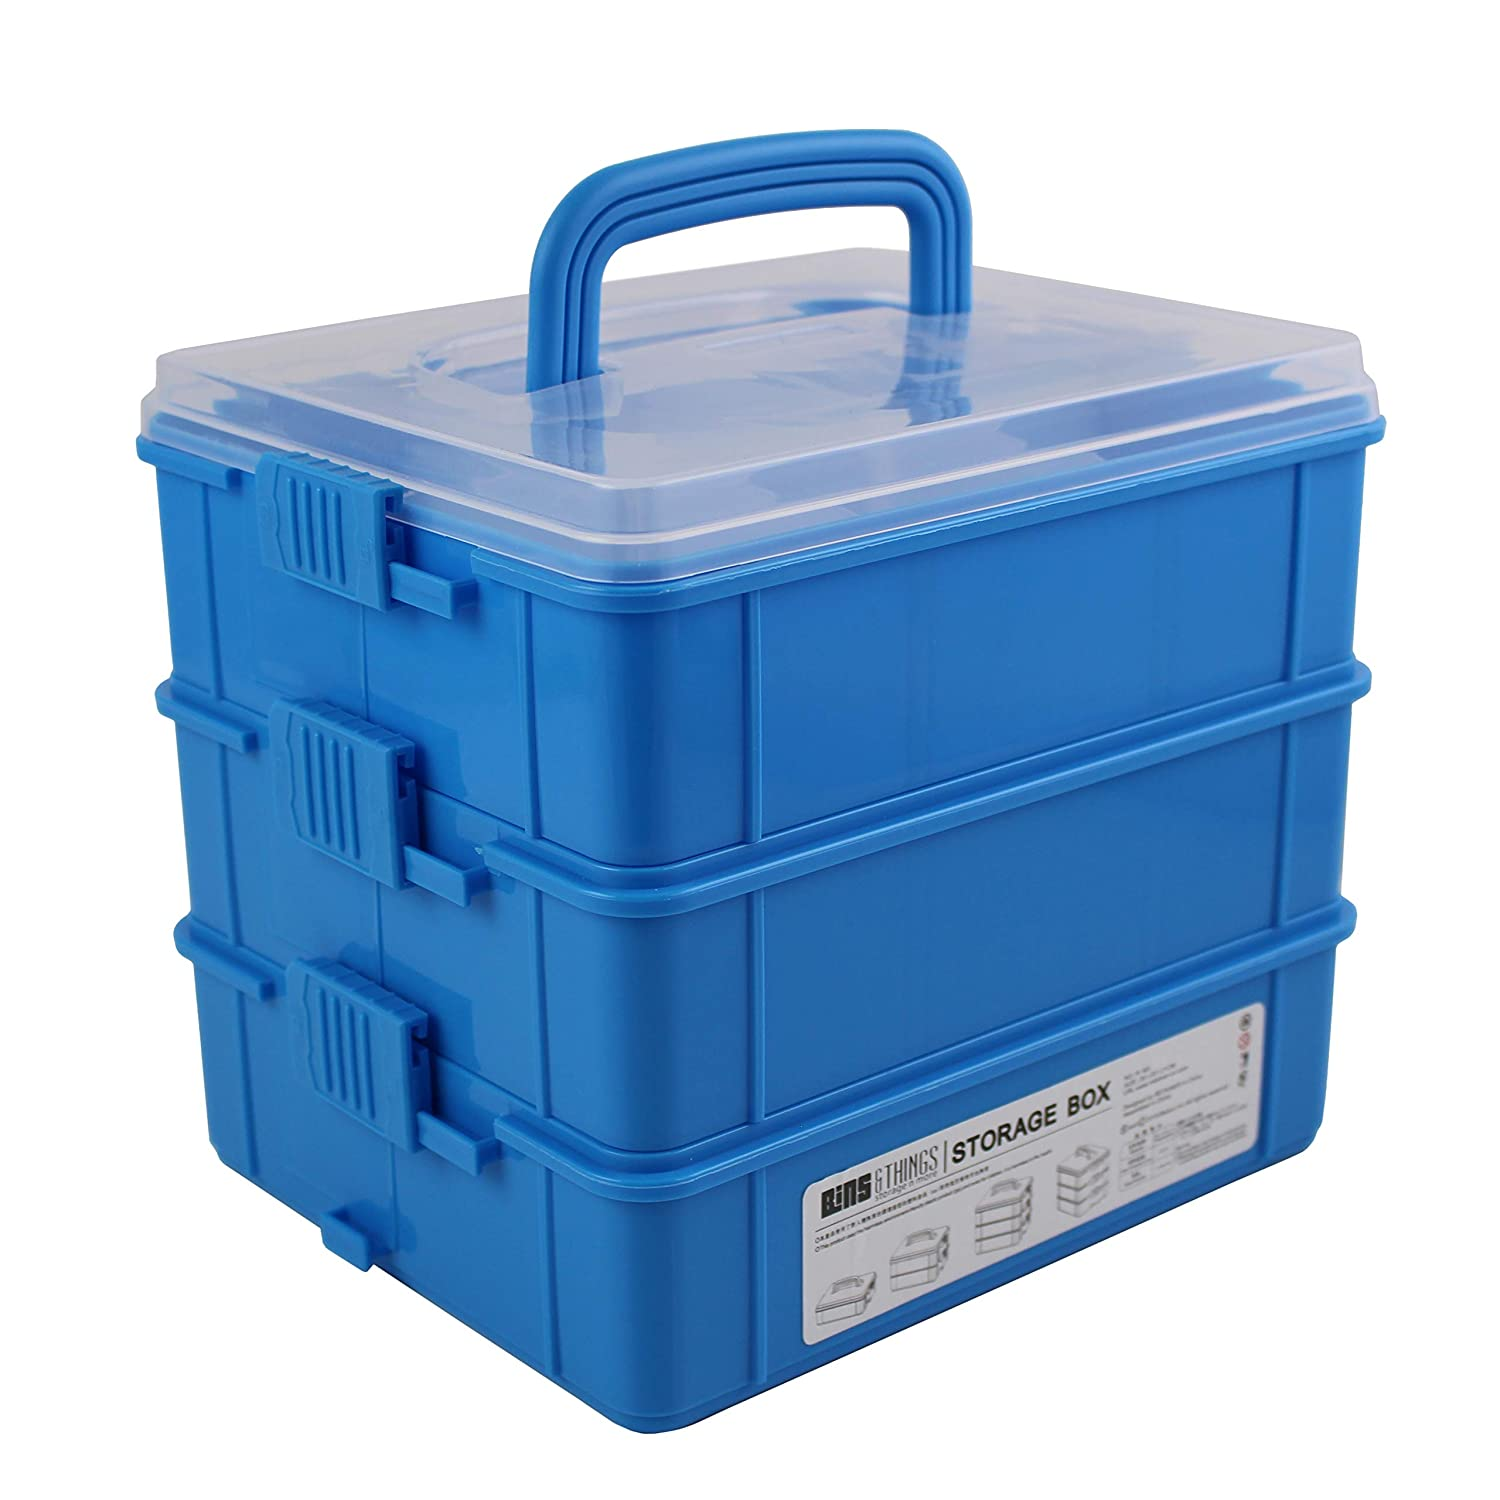 | 3-Tier Stackable Storage Bins for Arts and Crafts Bins /& Things Stackable Storage Containers with 30 Adjustable Compartments Sewing Accessories Jewelry Making 13W x 9D 9.5H Inch Beads Organizer